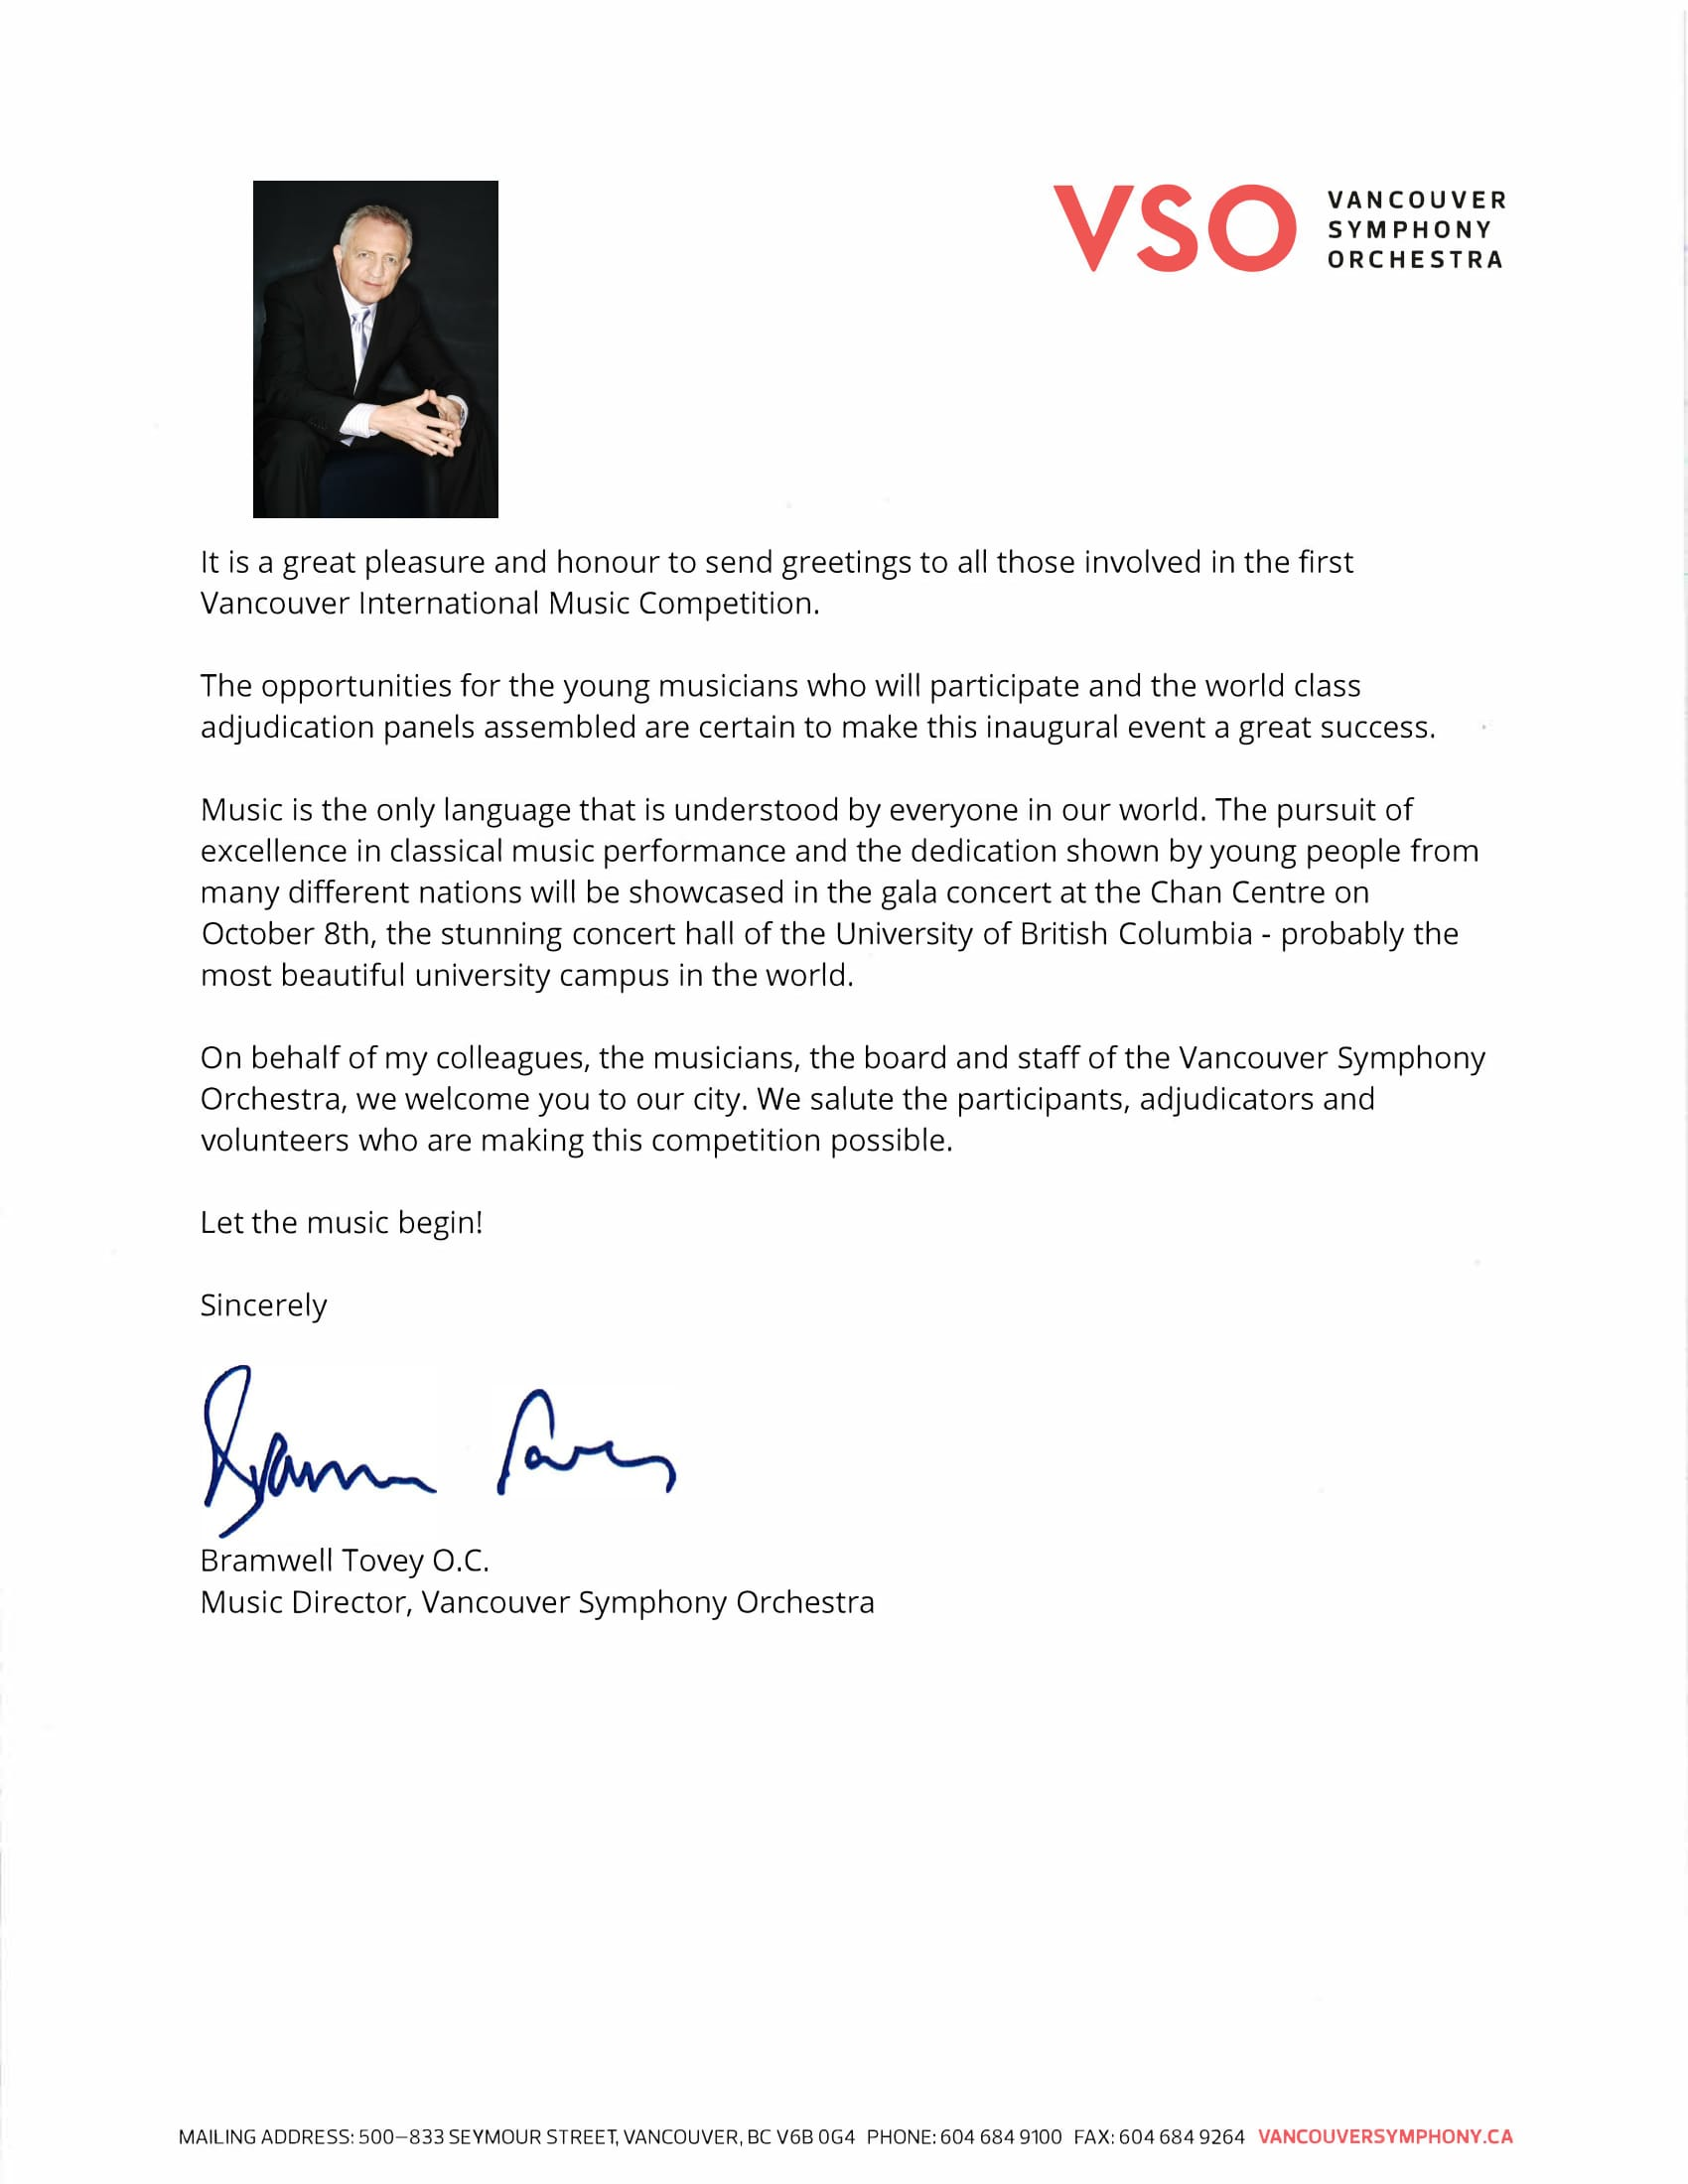 Greeting Letter From Mr Bramwell Tovey Vancouver International